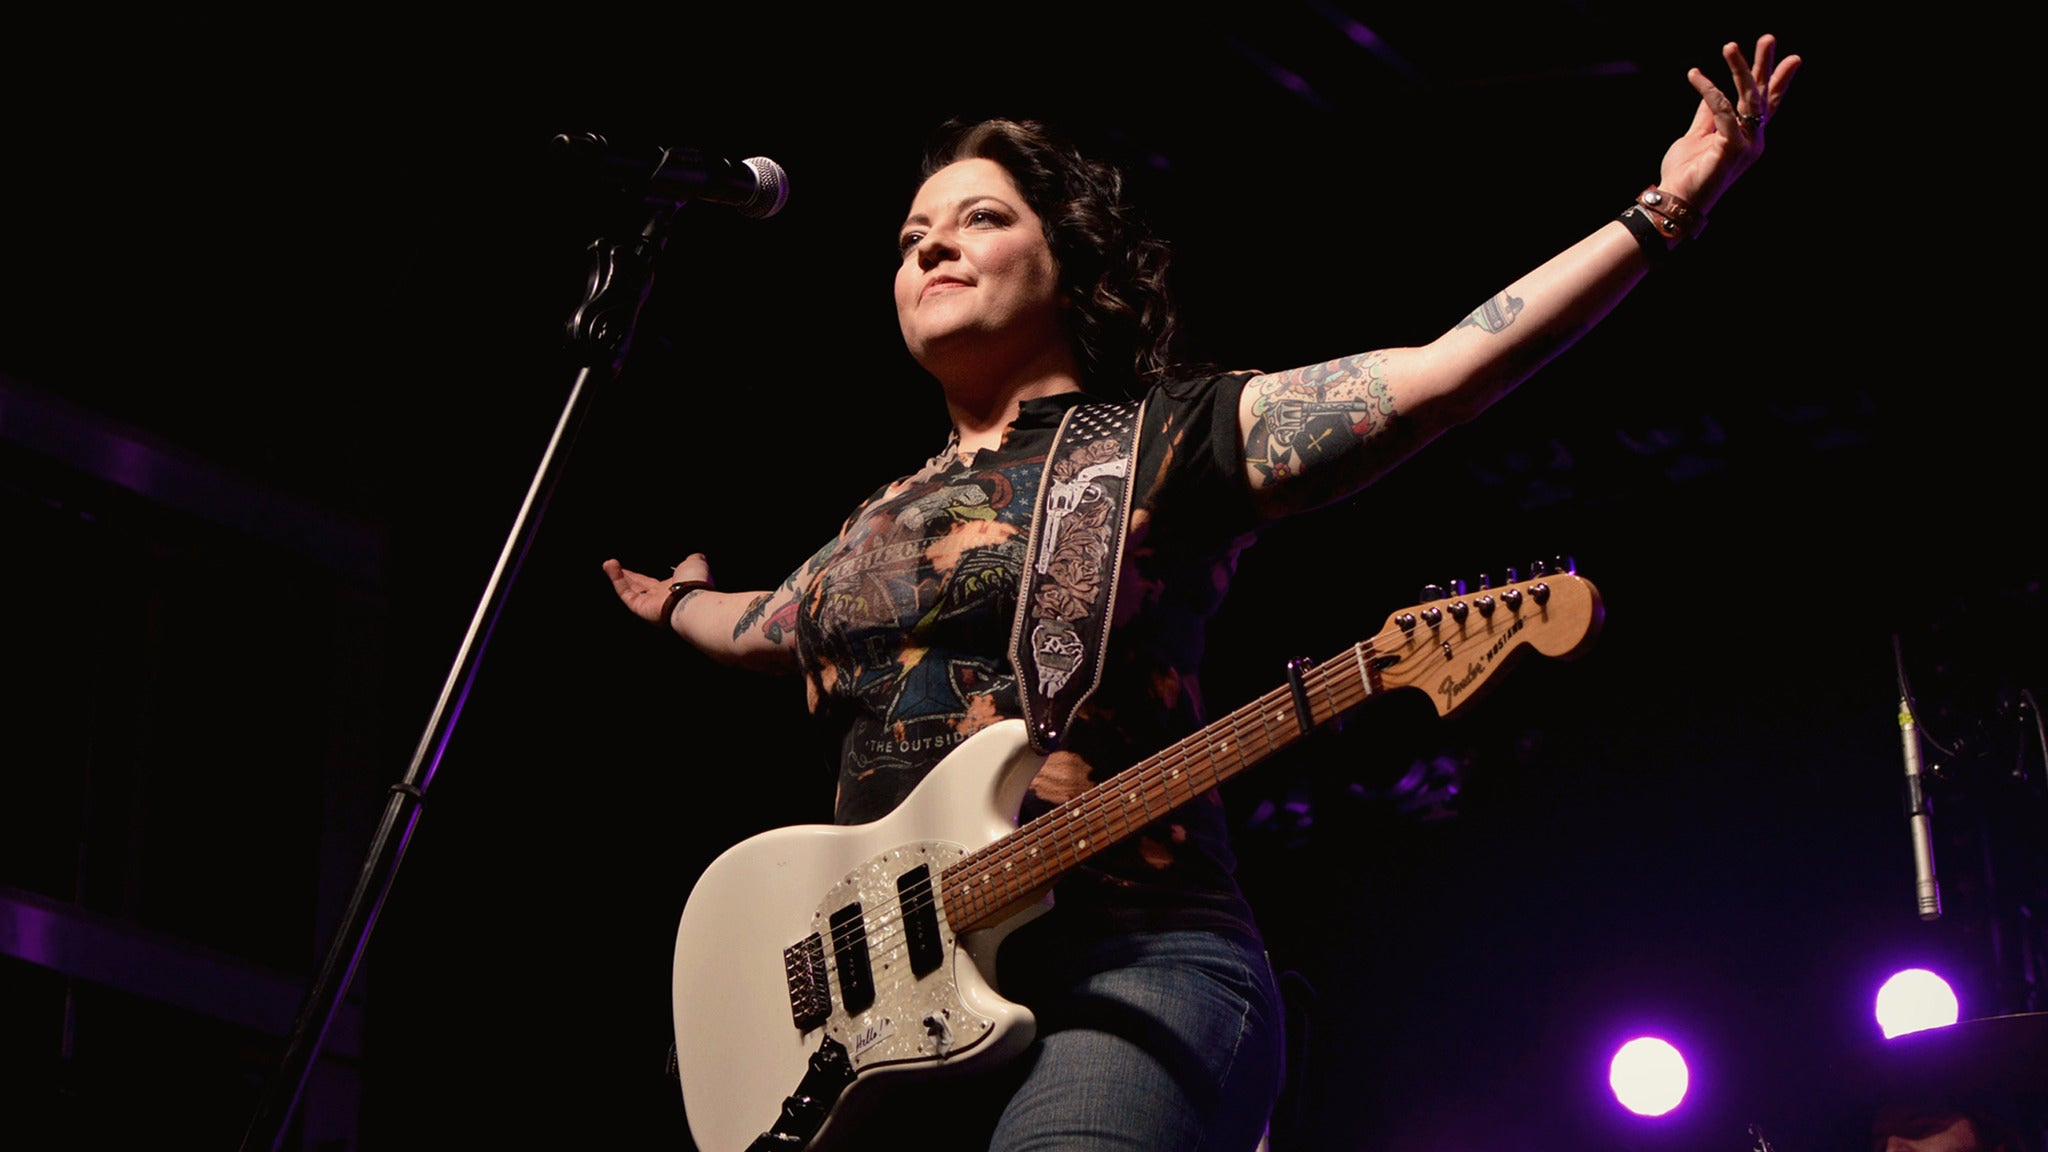 Ashley McBryde at Phase 2 Dining & Entertainment